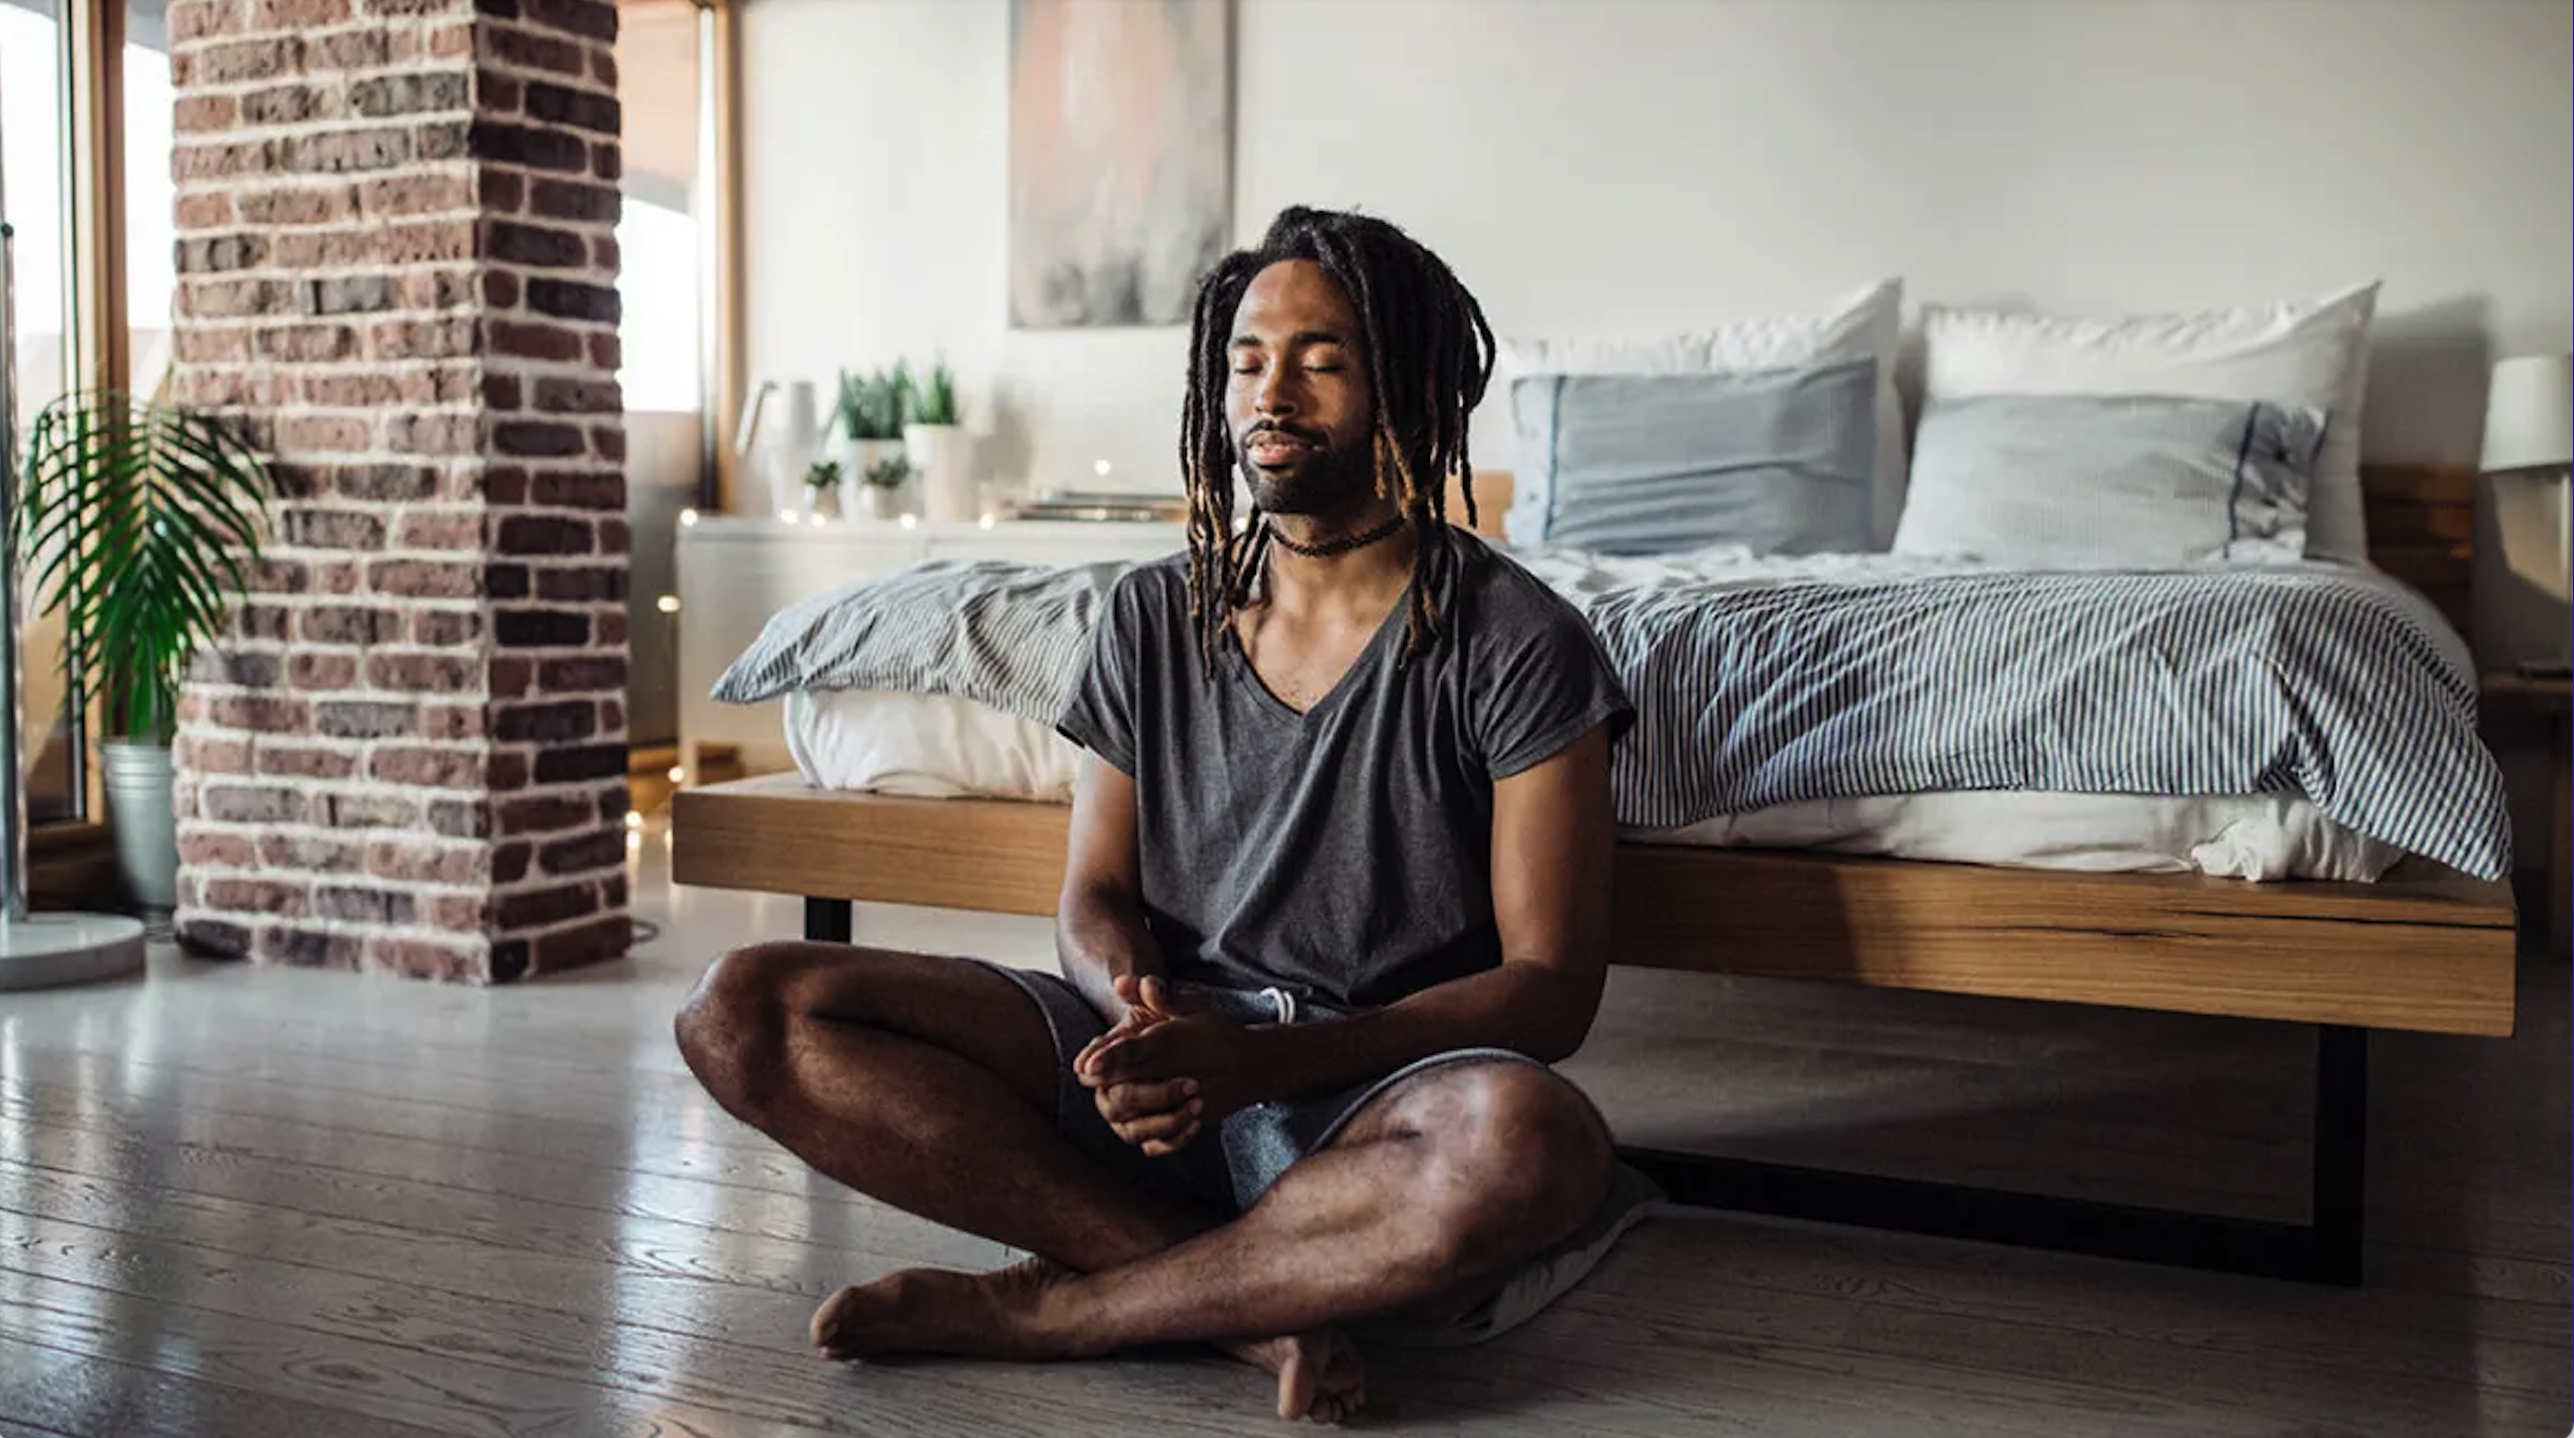 Ujjayi Breathing: Definition, Benefits, and Techniques